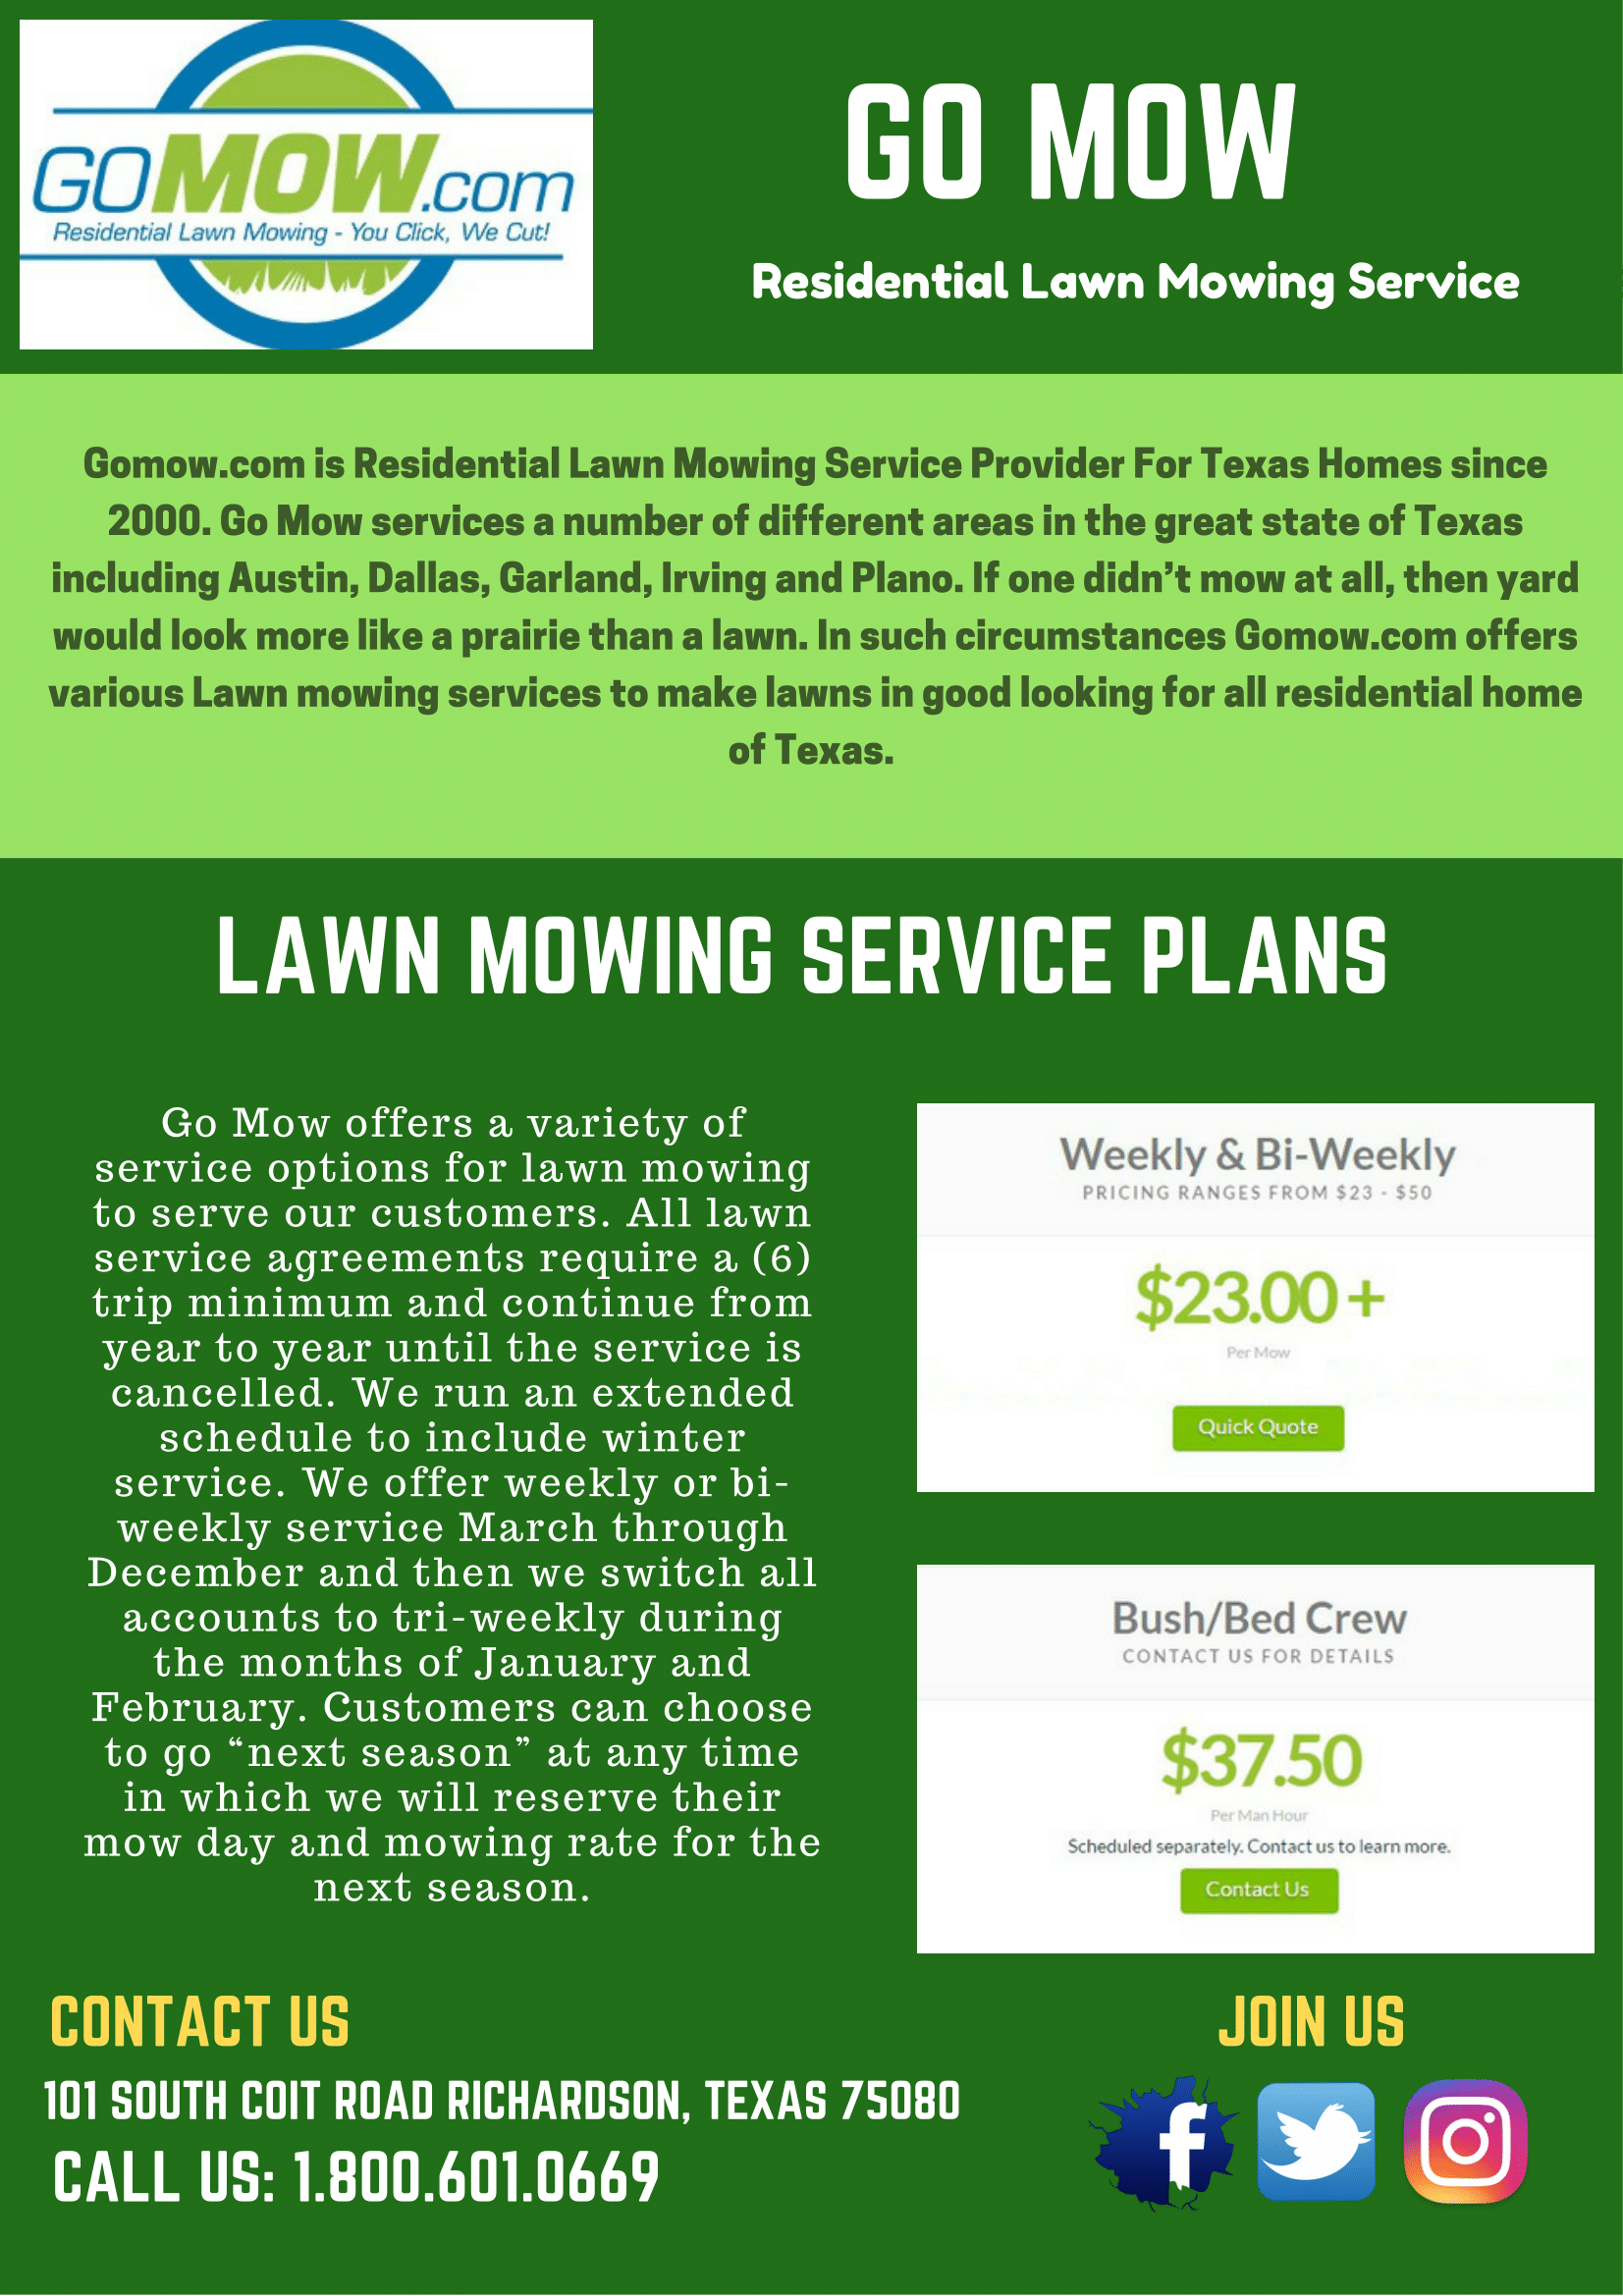 GomowCom Is Residential Lawn Mowing Service Provider For Texas